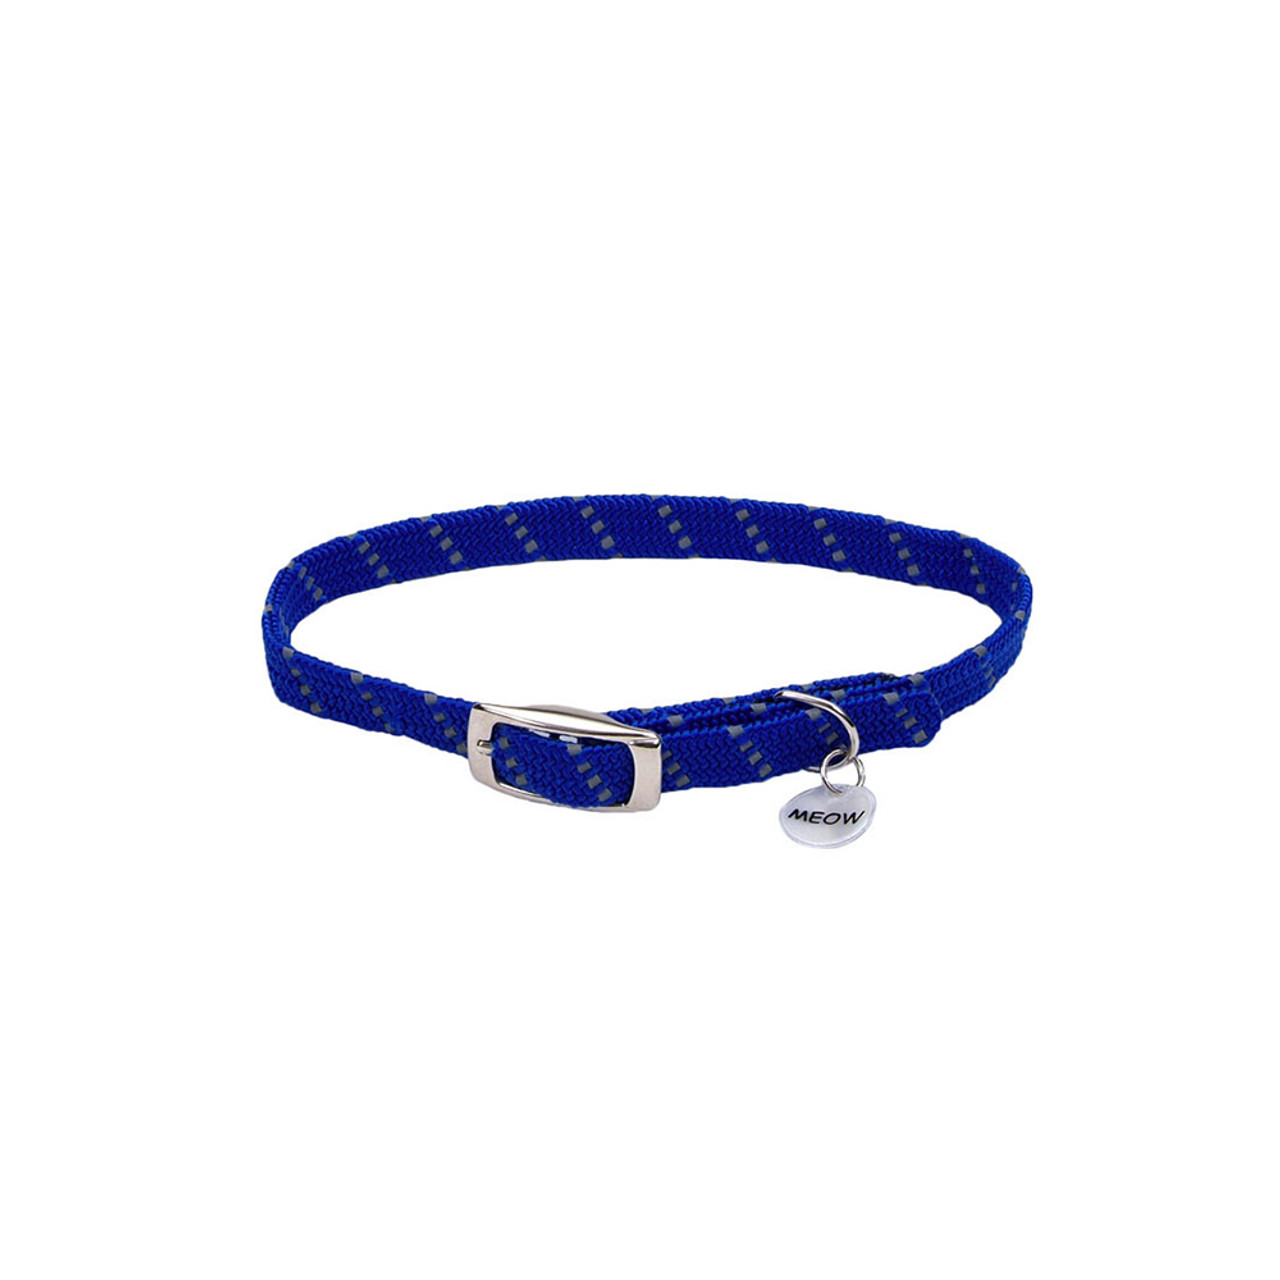 ElastaCat Reflective Safety Stretch Cat Collar With Reflective Charm